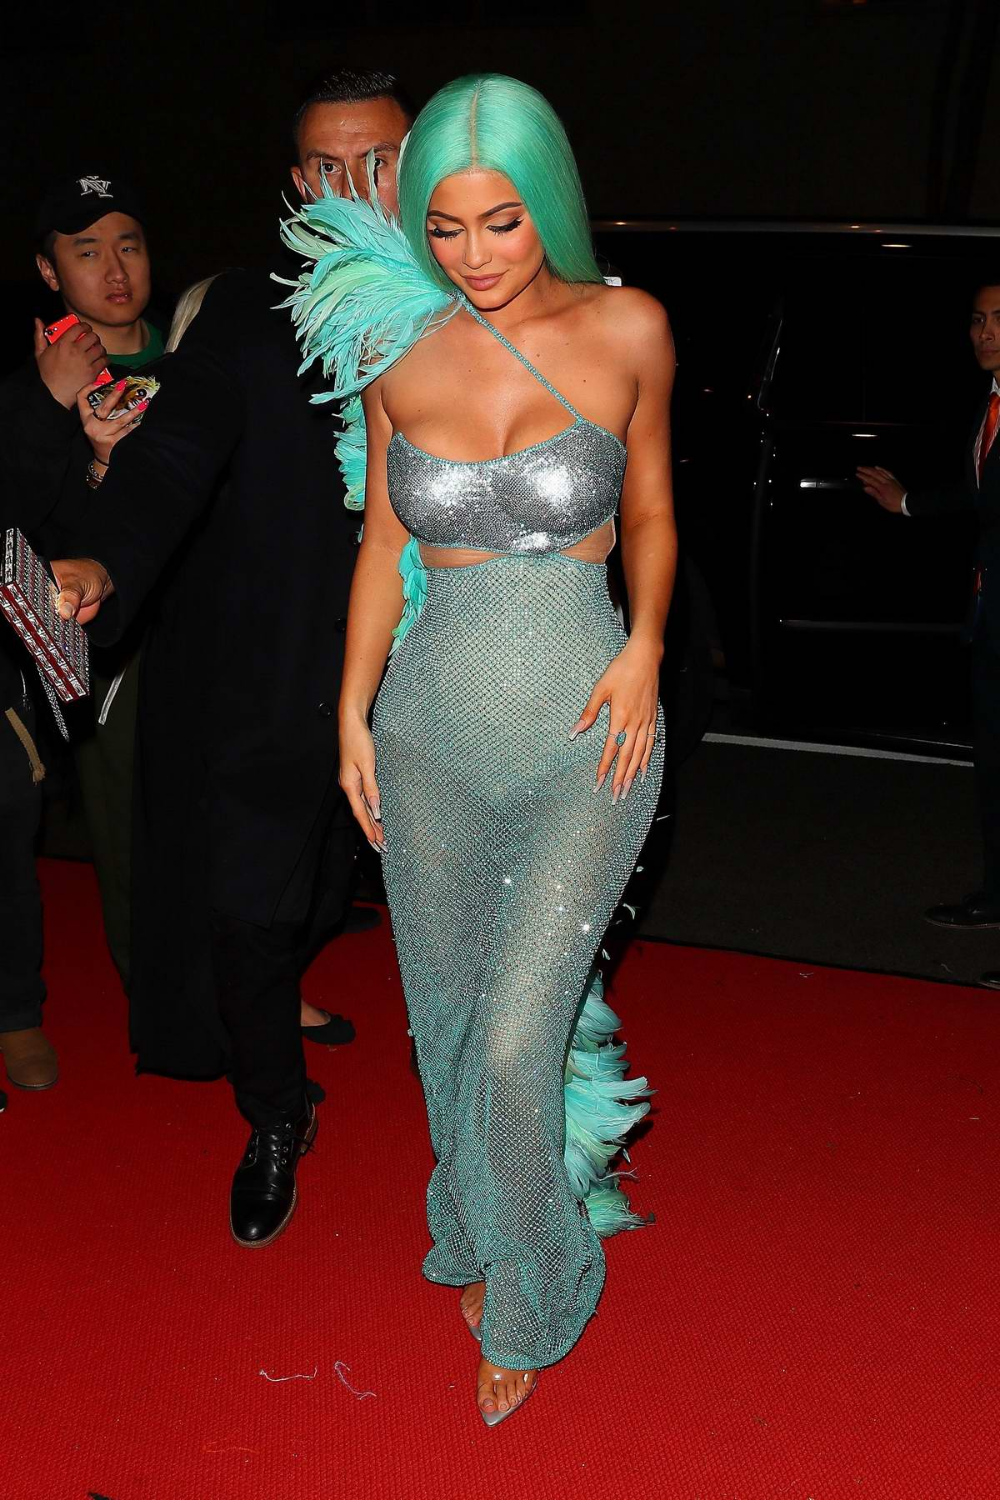 Kylie Jenner Dazzles In Semi Sheer Turquoise Dress With Matching Hair At The 2019 Met Gala After Party In New Yo In 2020 Met Gala Dresses Event Dresses Turquoise Dress